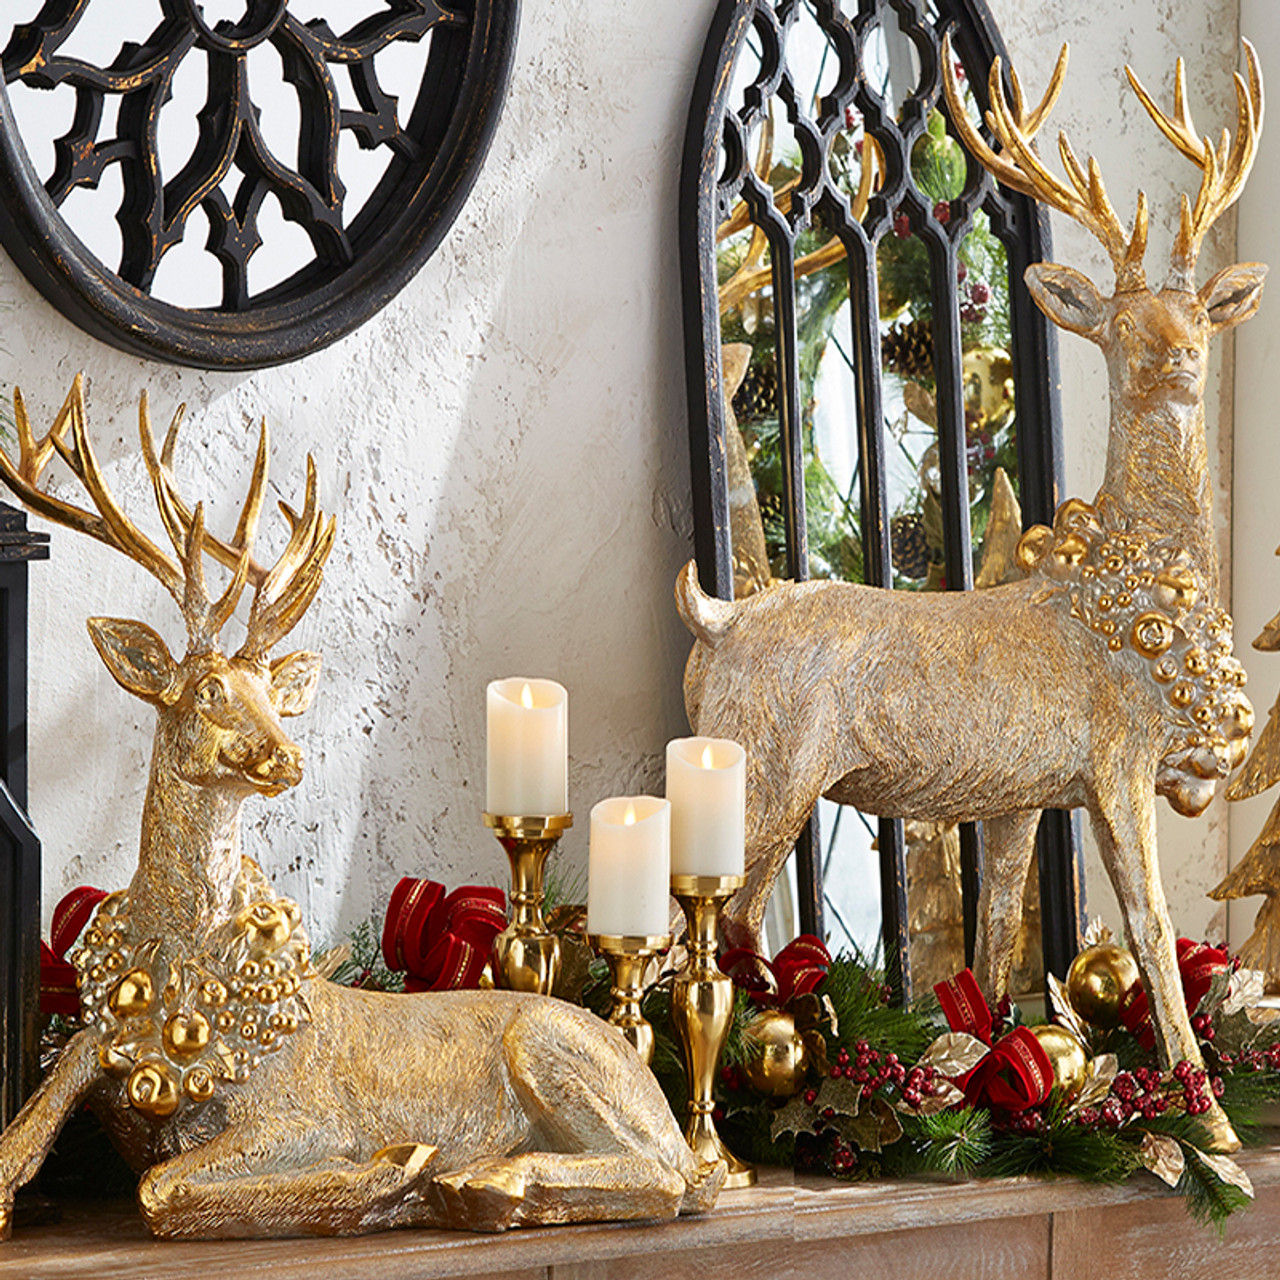 Raz Laying Or Standing Gold Reindeer With Wreath Collar Imports Christmas Home Decor Figure